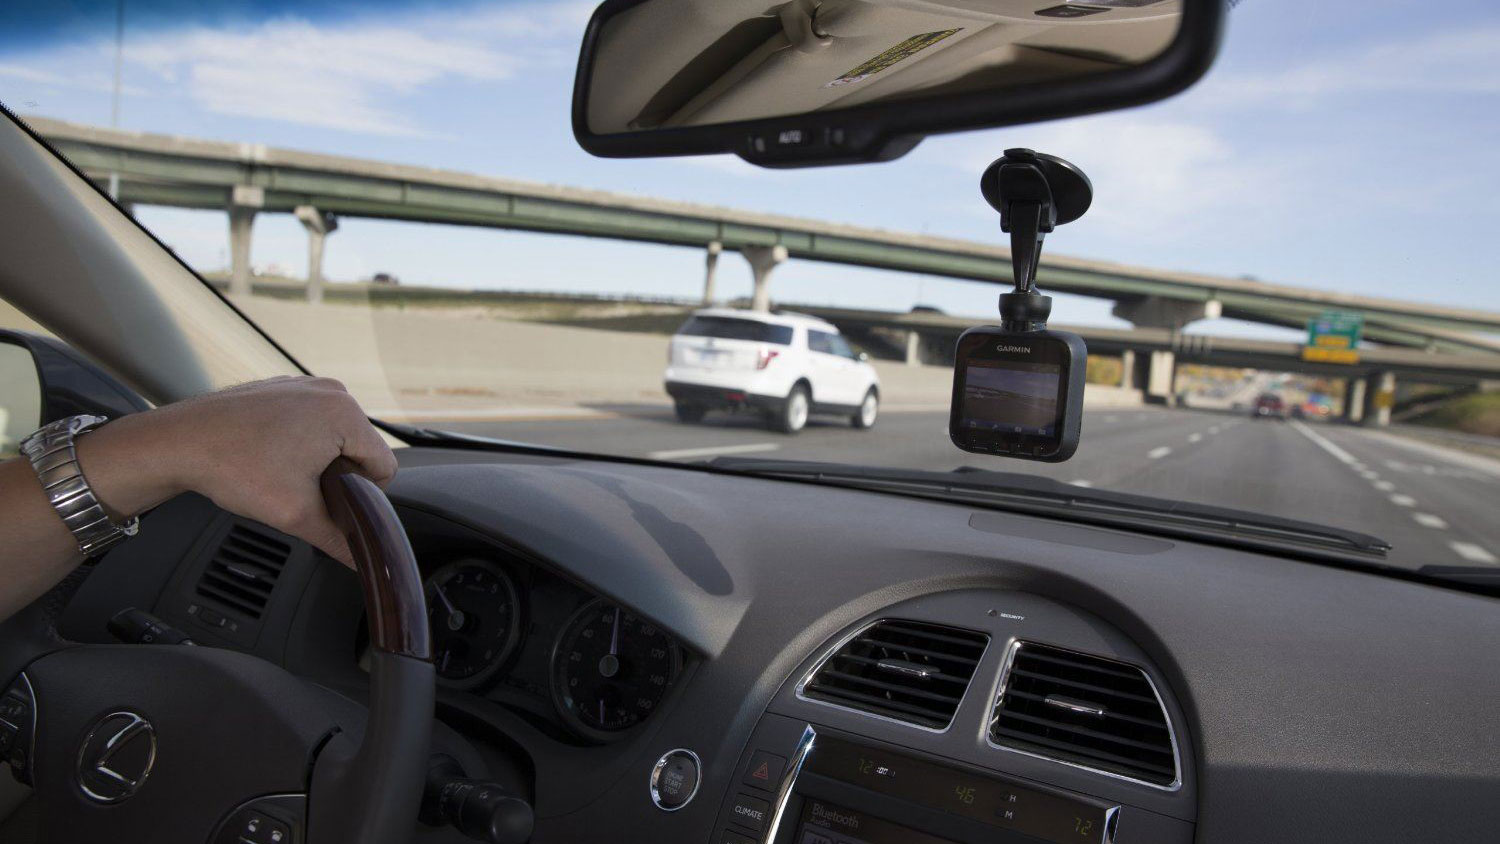 Insurance companies offer 5% discount on net premiums for vehicles equipped with Dash Camera (Dashboard Video Camera)